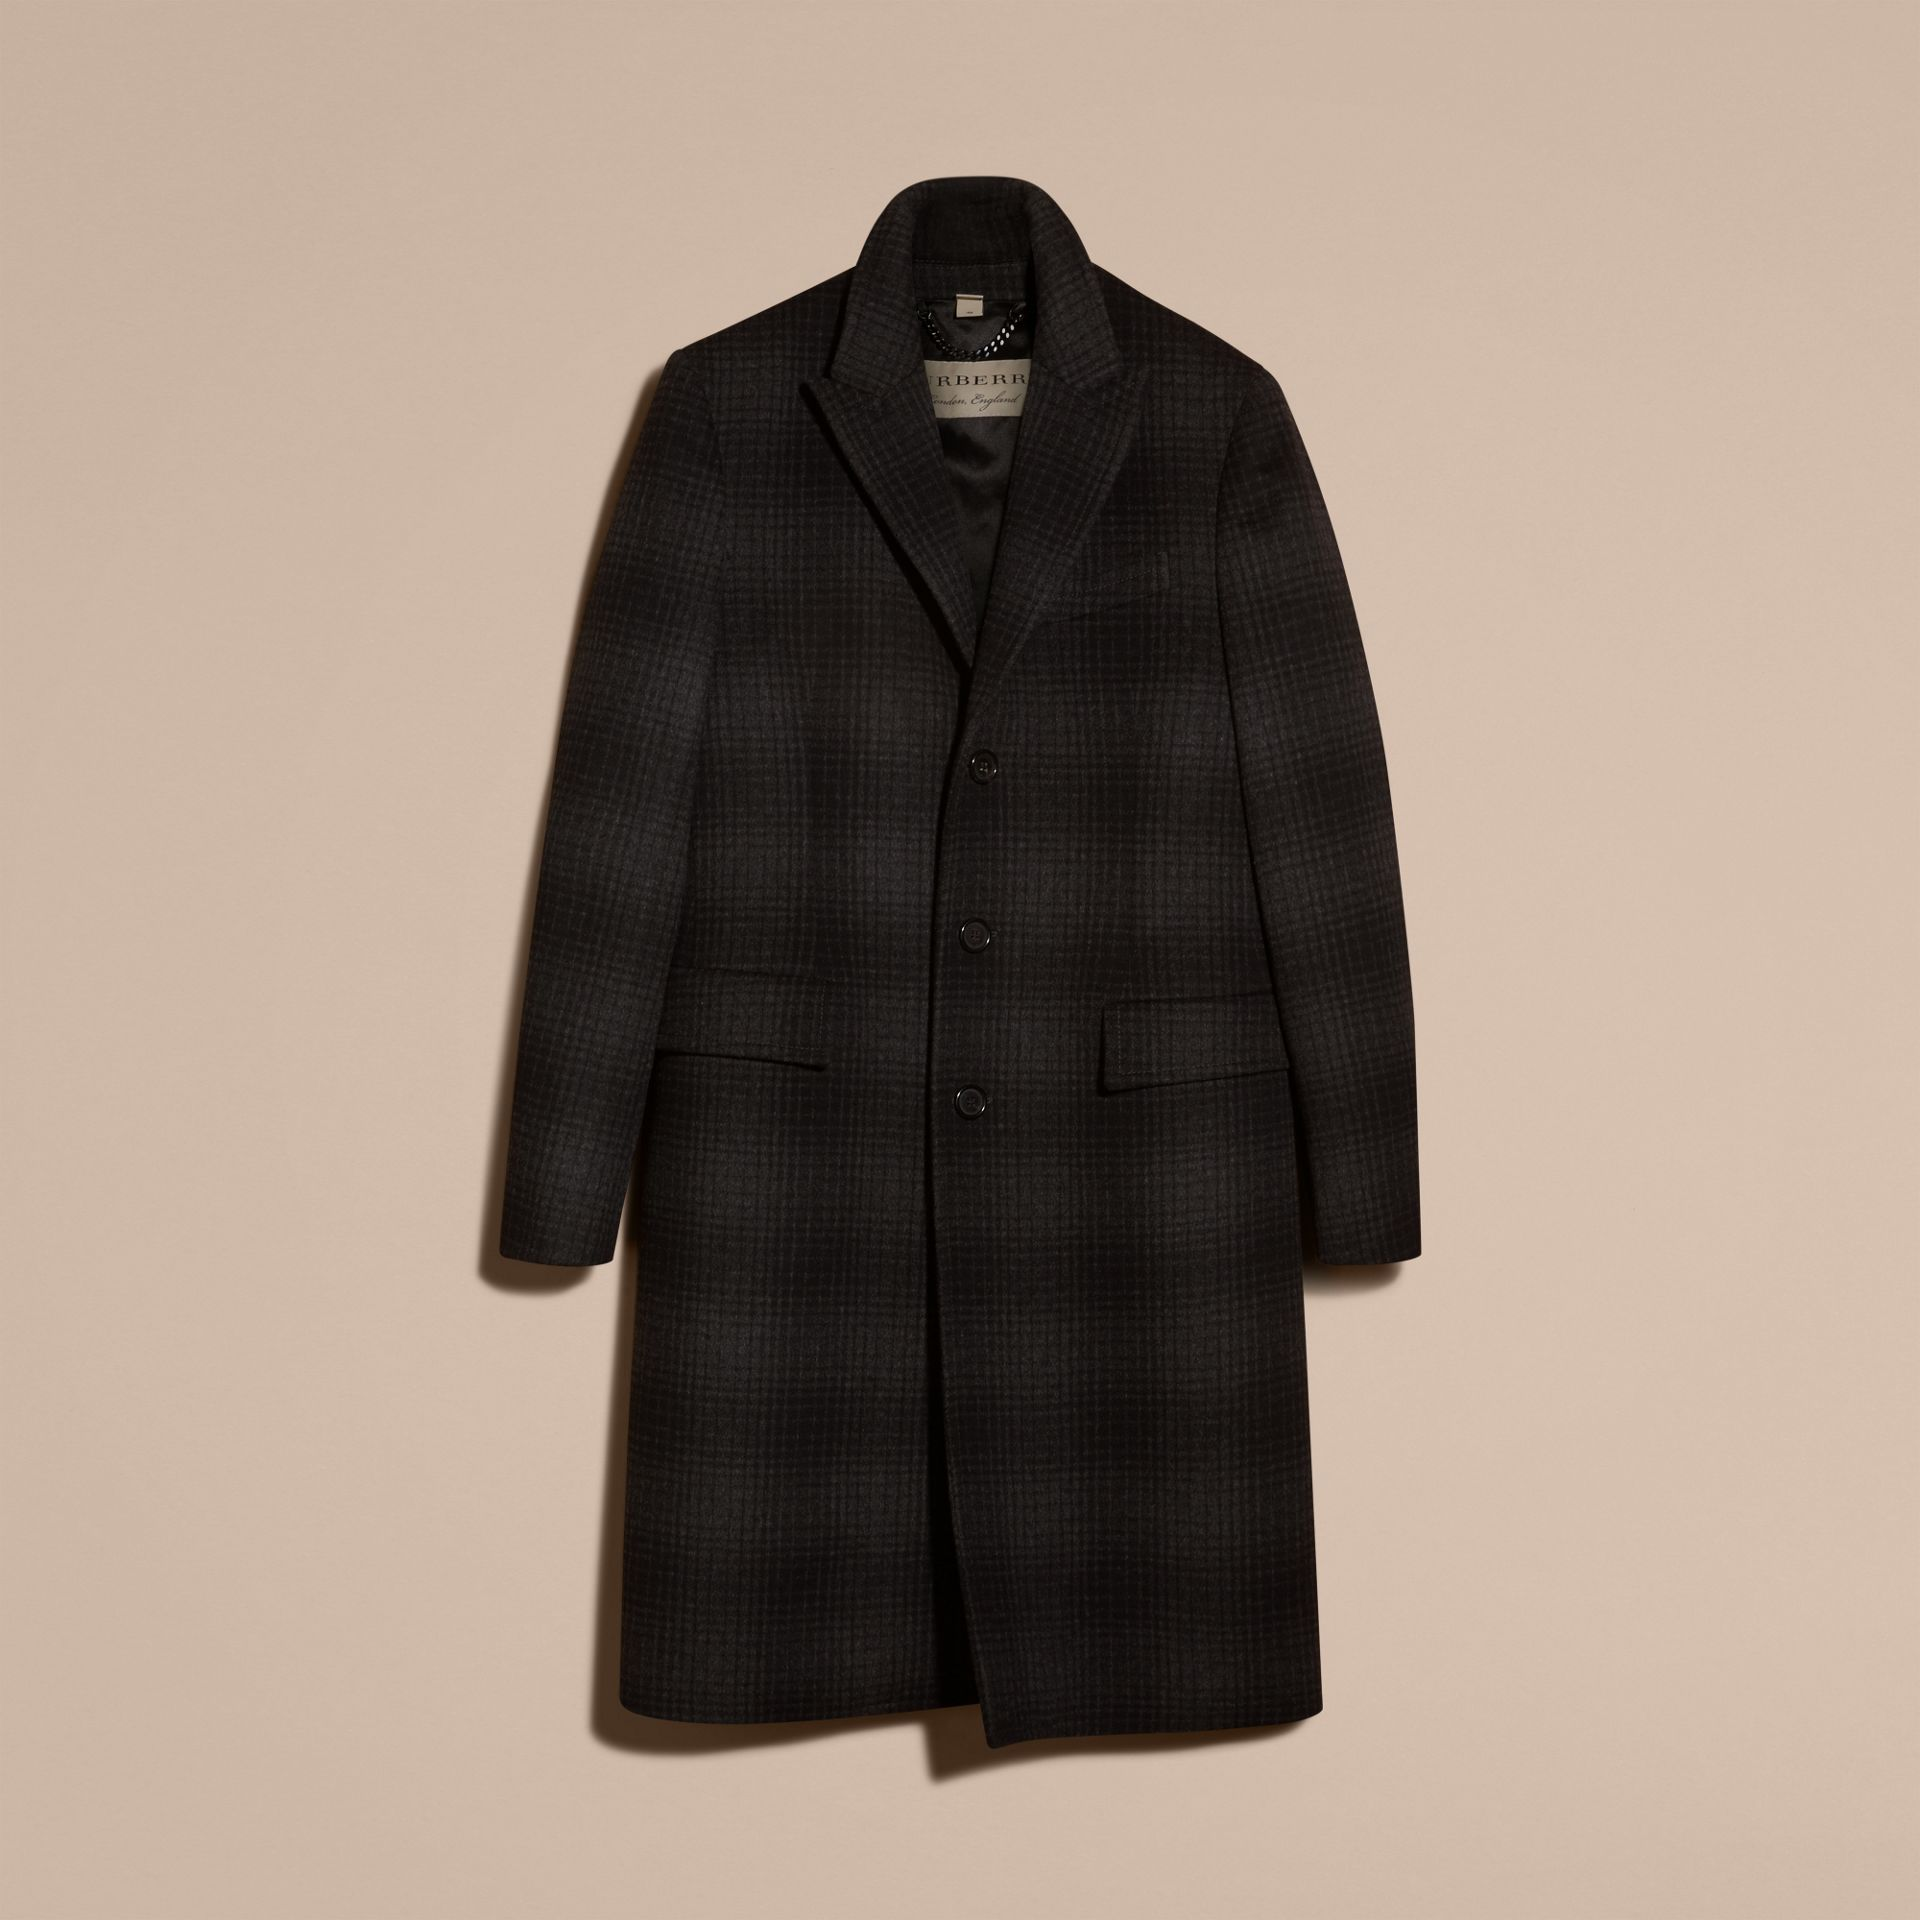 Charcoal melange Tailored Check Wool Cashmere Coat - gallery image 4